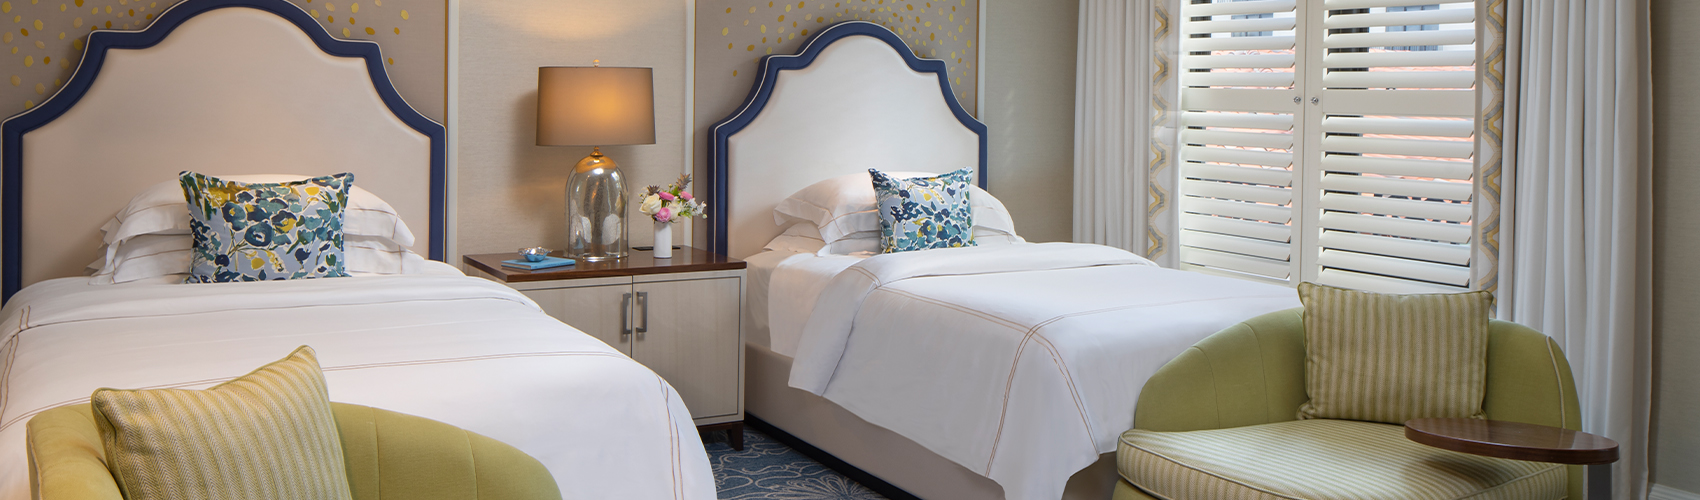 Deluxe Guest Room with Resort View and Double Beds